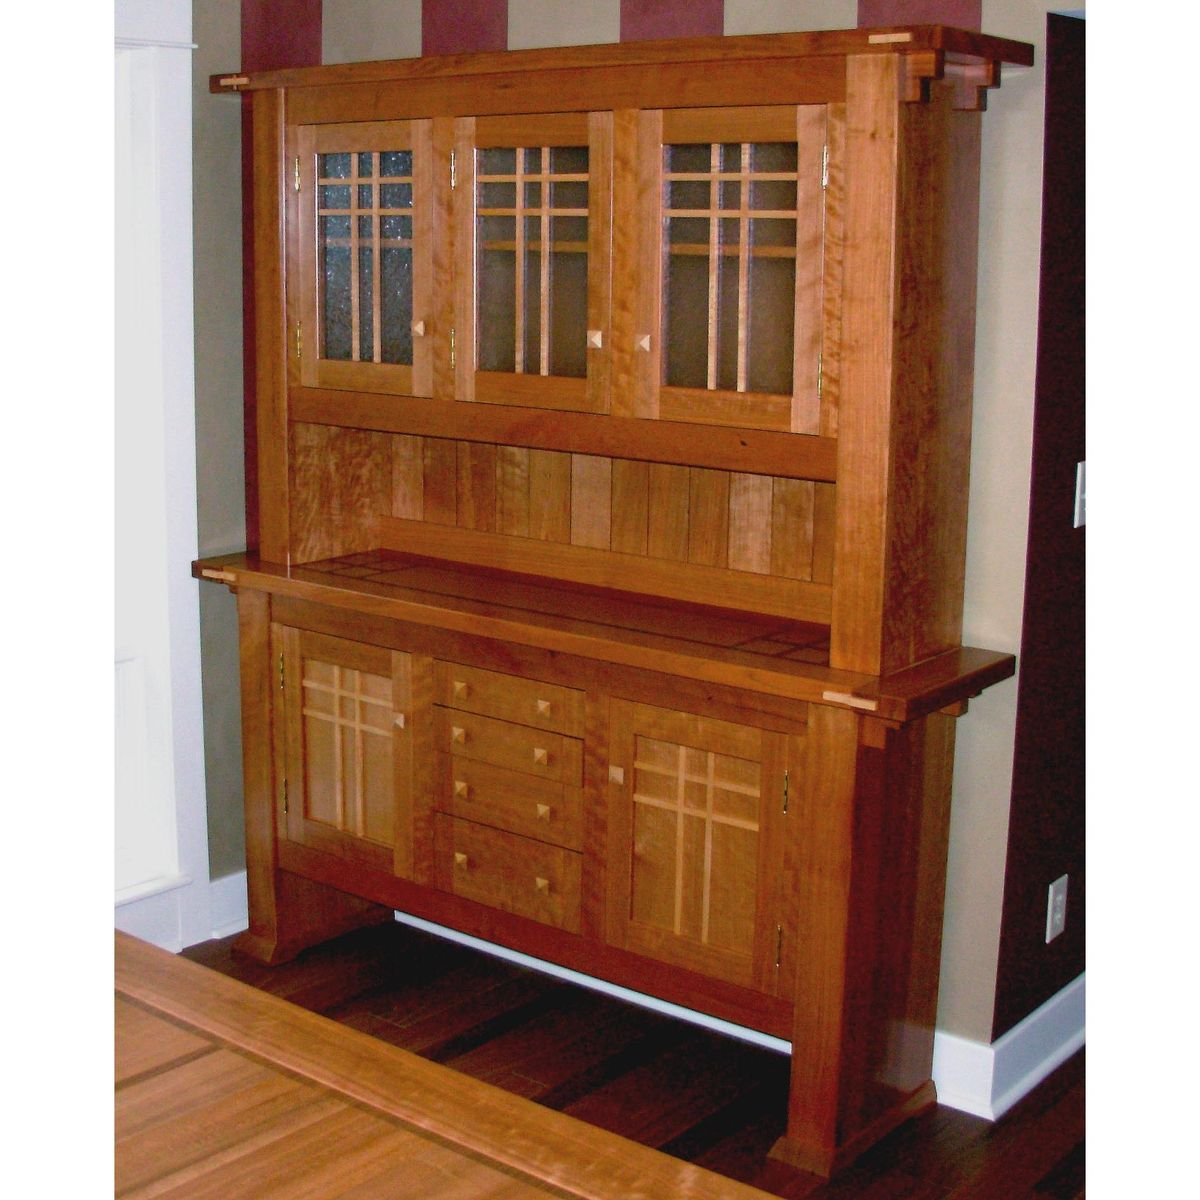 Dining Room Hutch Buffet: Hand Made Dining Room Hutch By Mevans Design